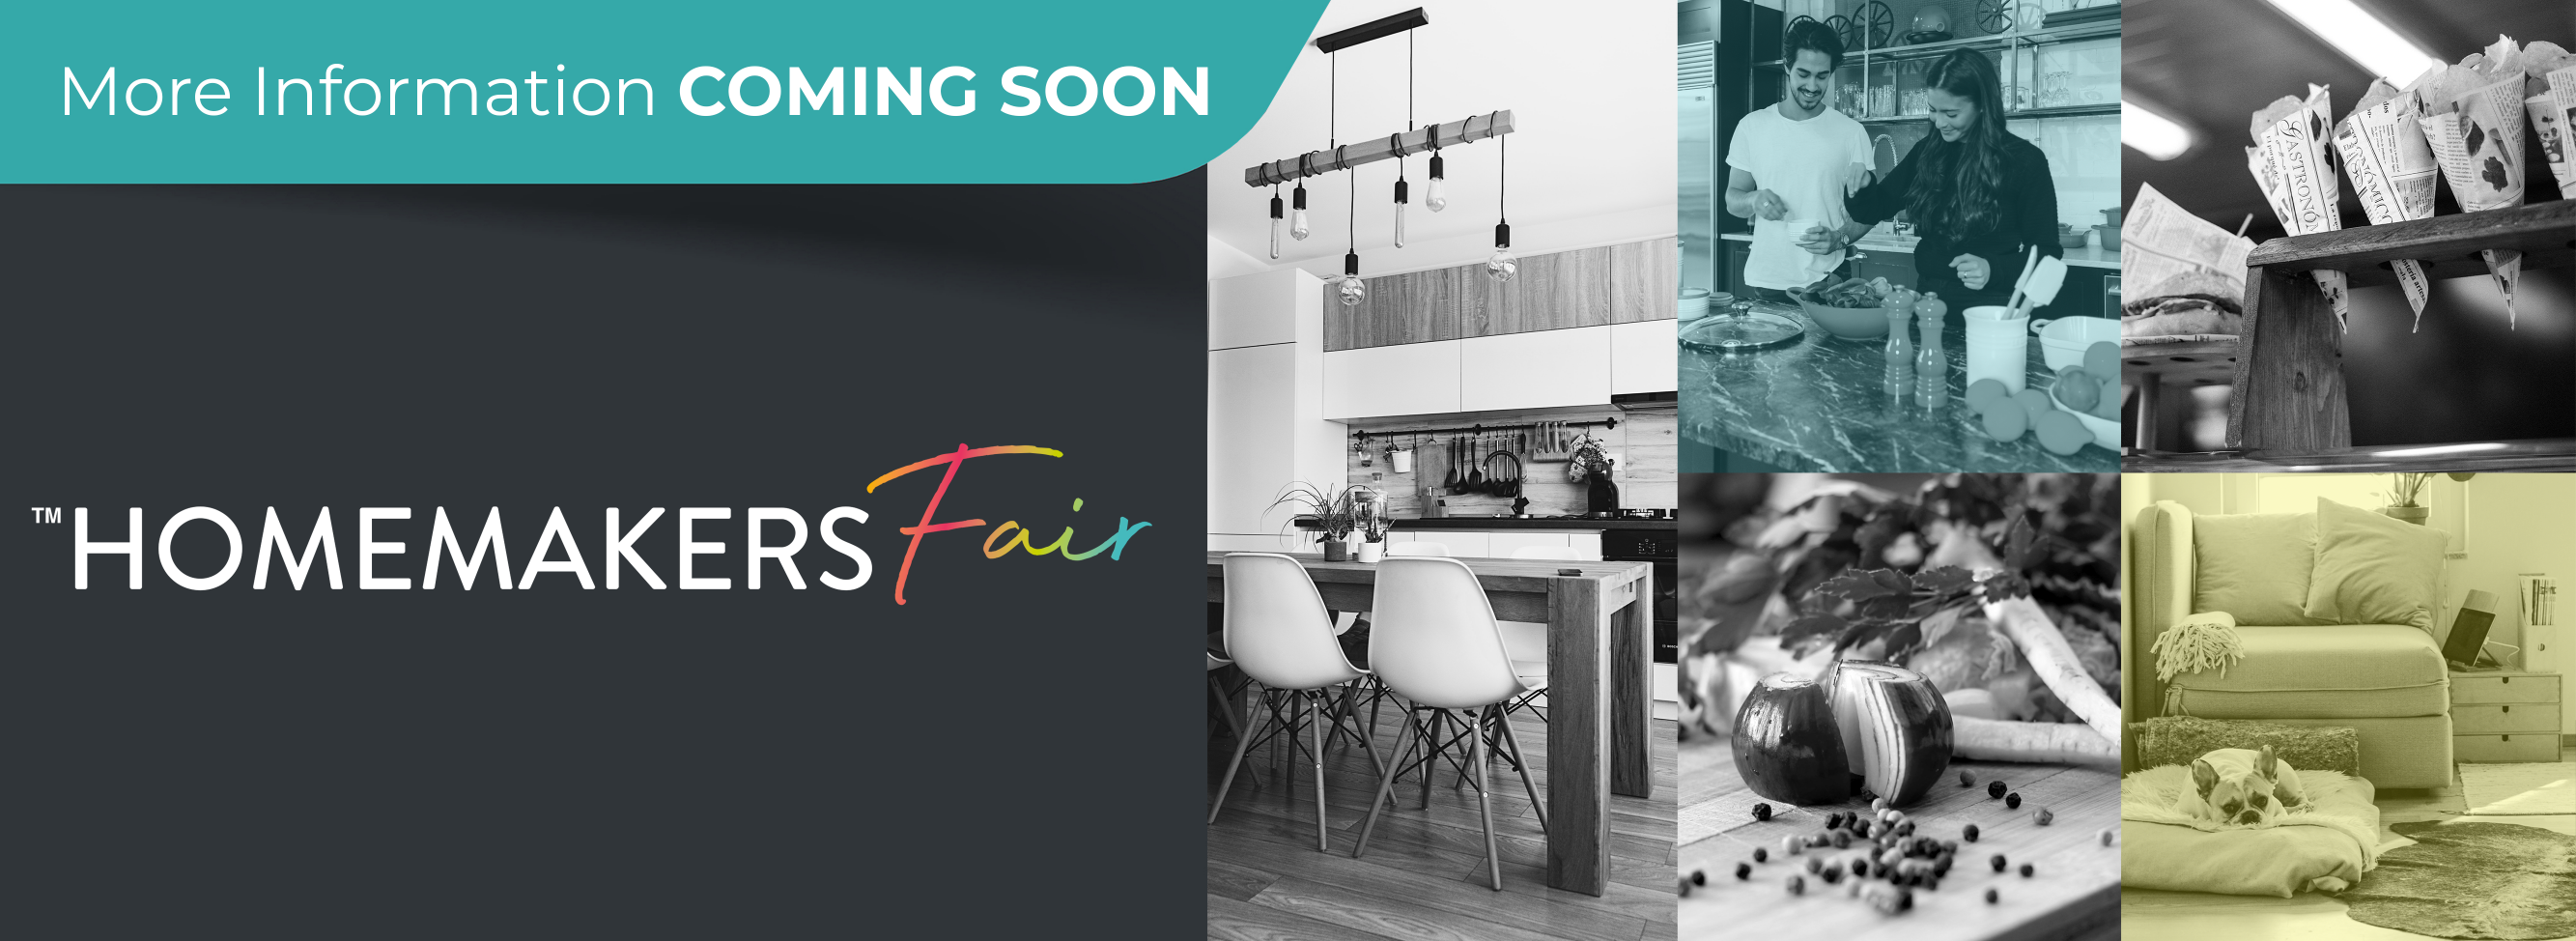 PHMfair – Coming soon homepage banner